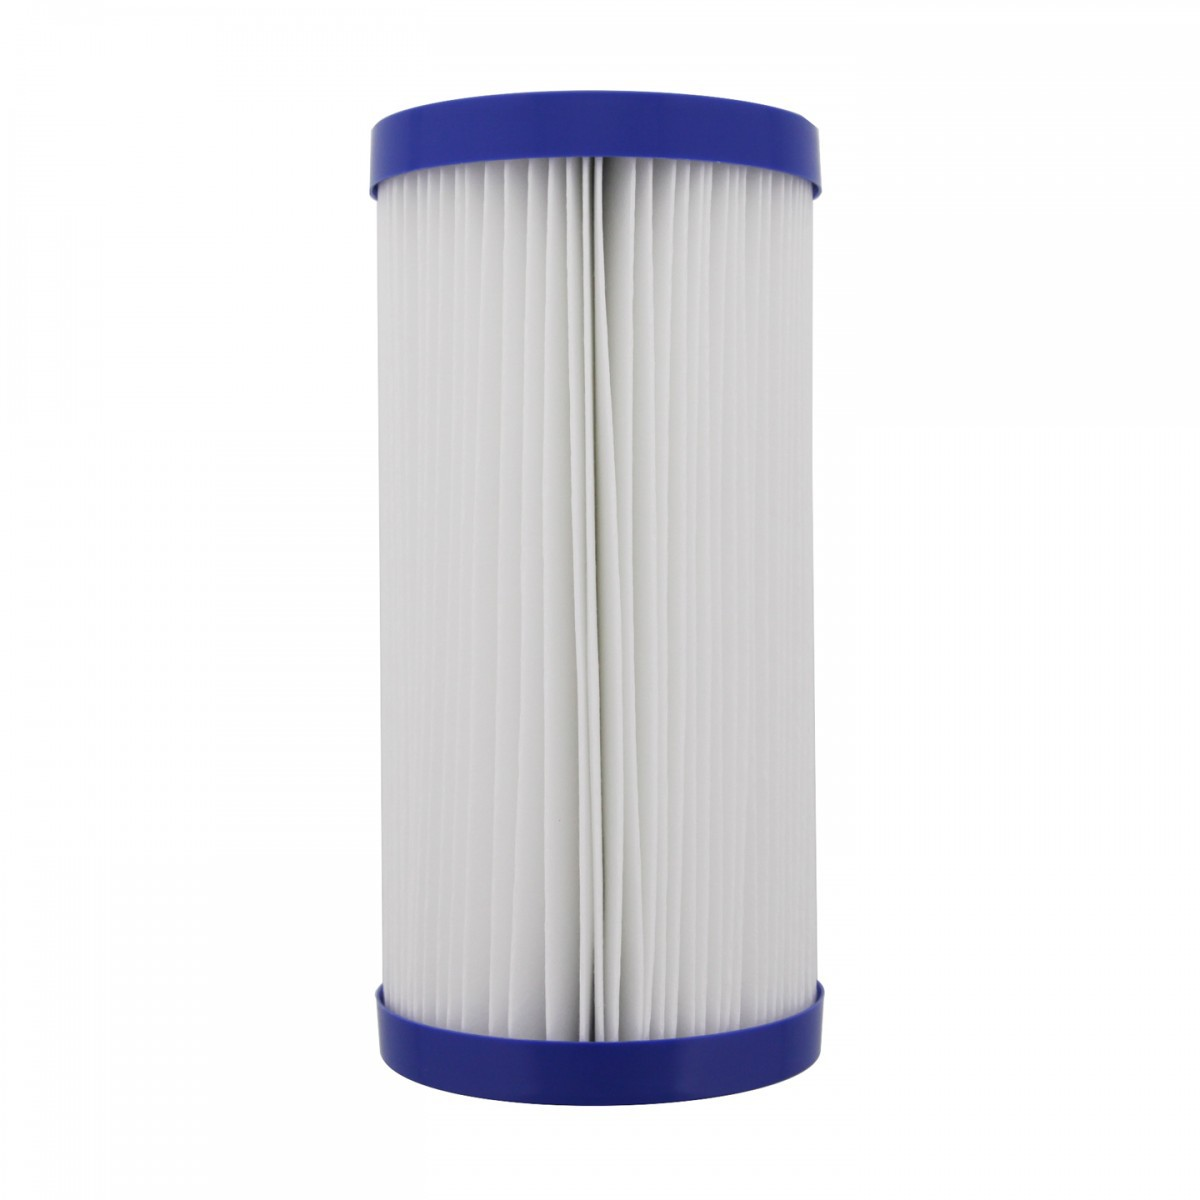 Omnifilter Rs6 Ss2 S06 Whole House Water Filter Cartridge